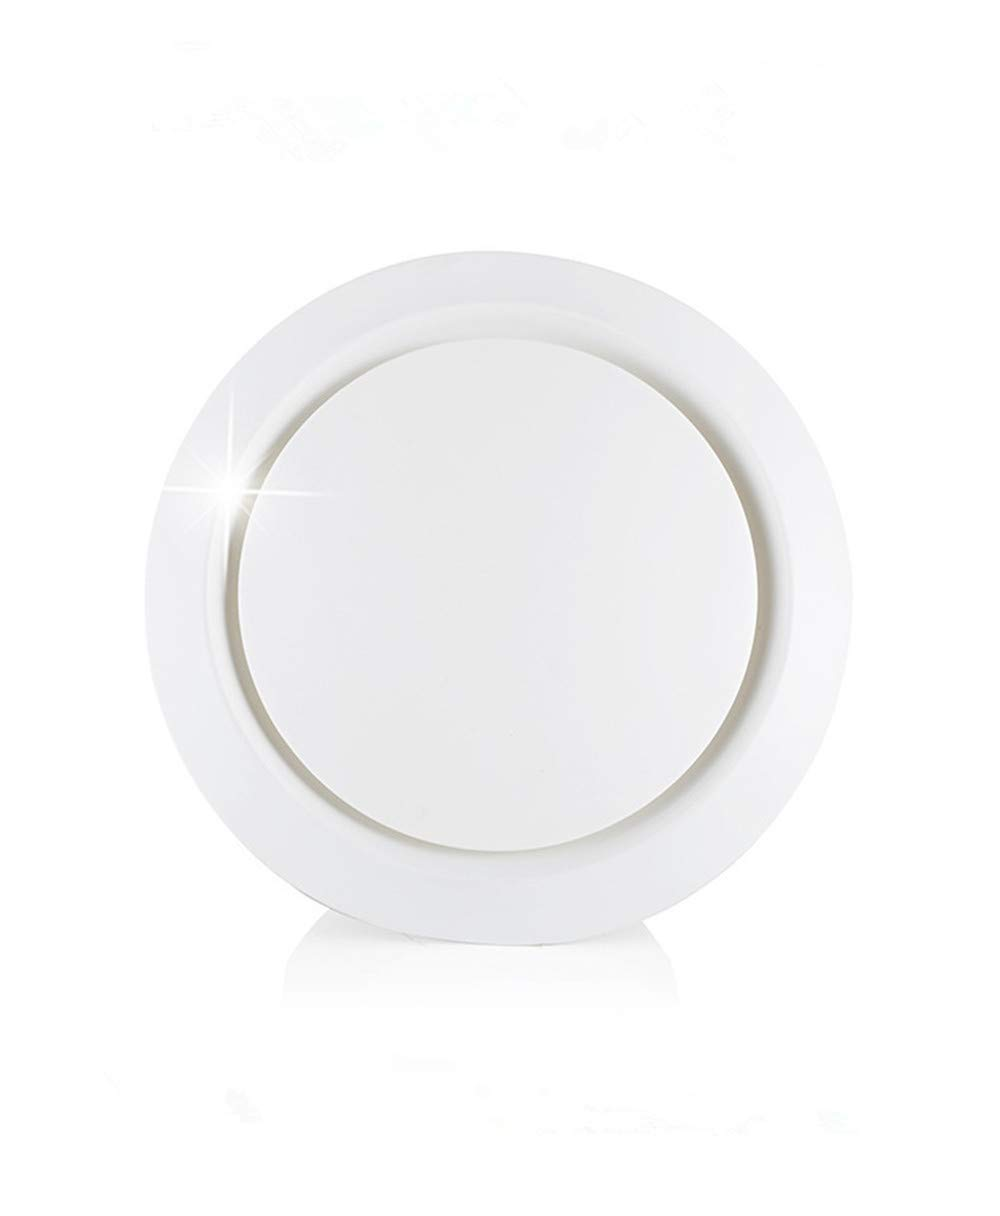 ABS Air Vent, H&L Adjustable ABS Air Vents Wall Ceilling Cover Soffit Vents for House(6 inch)